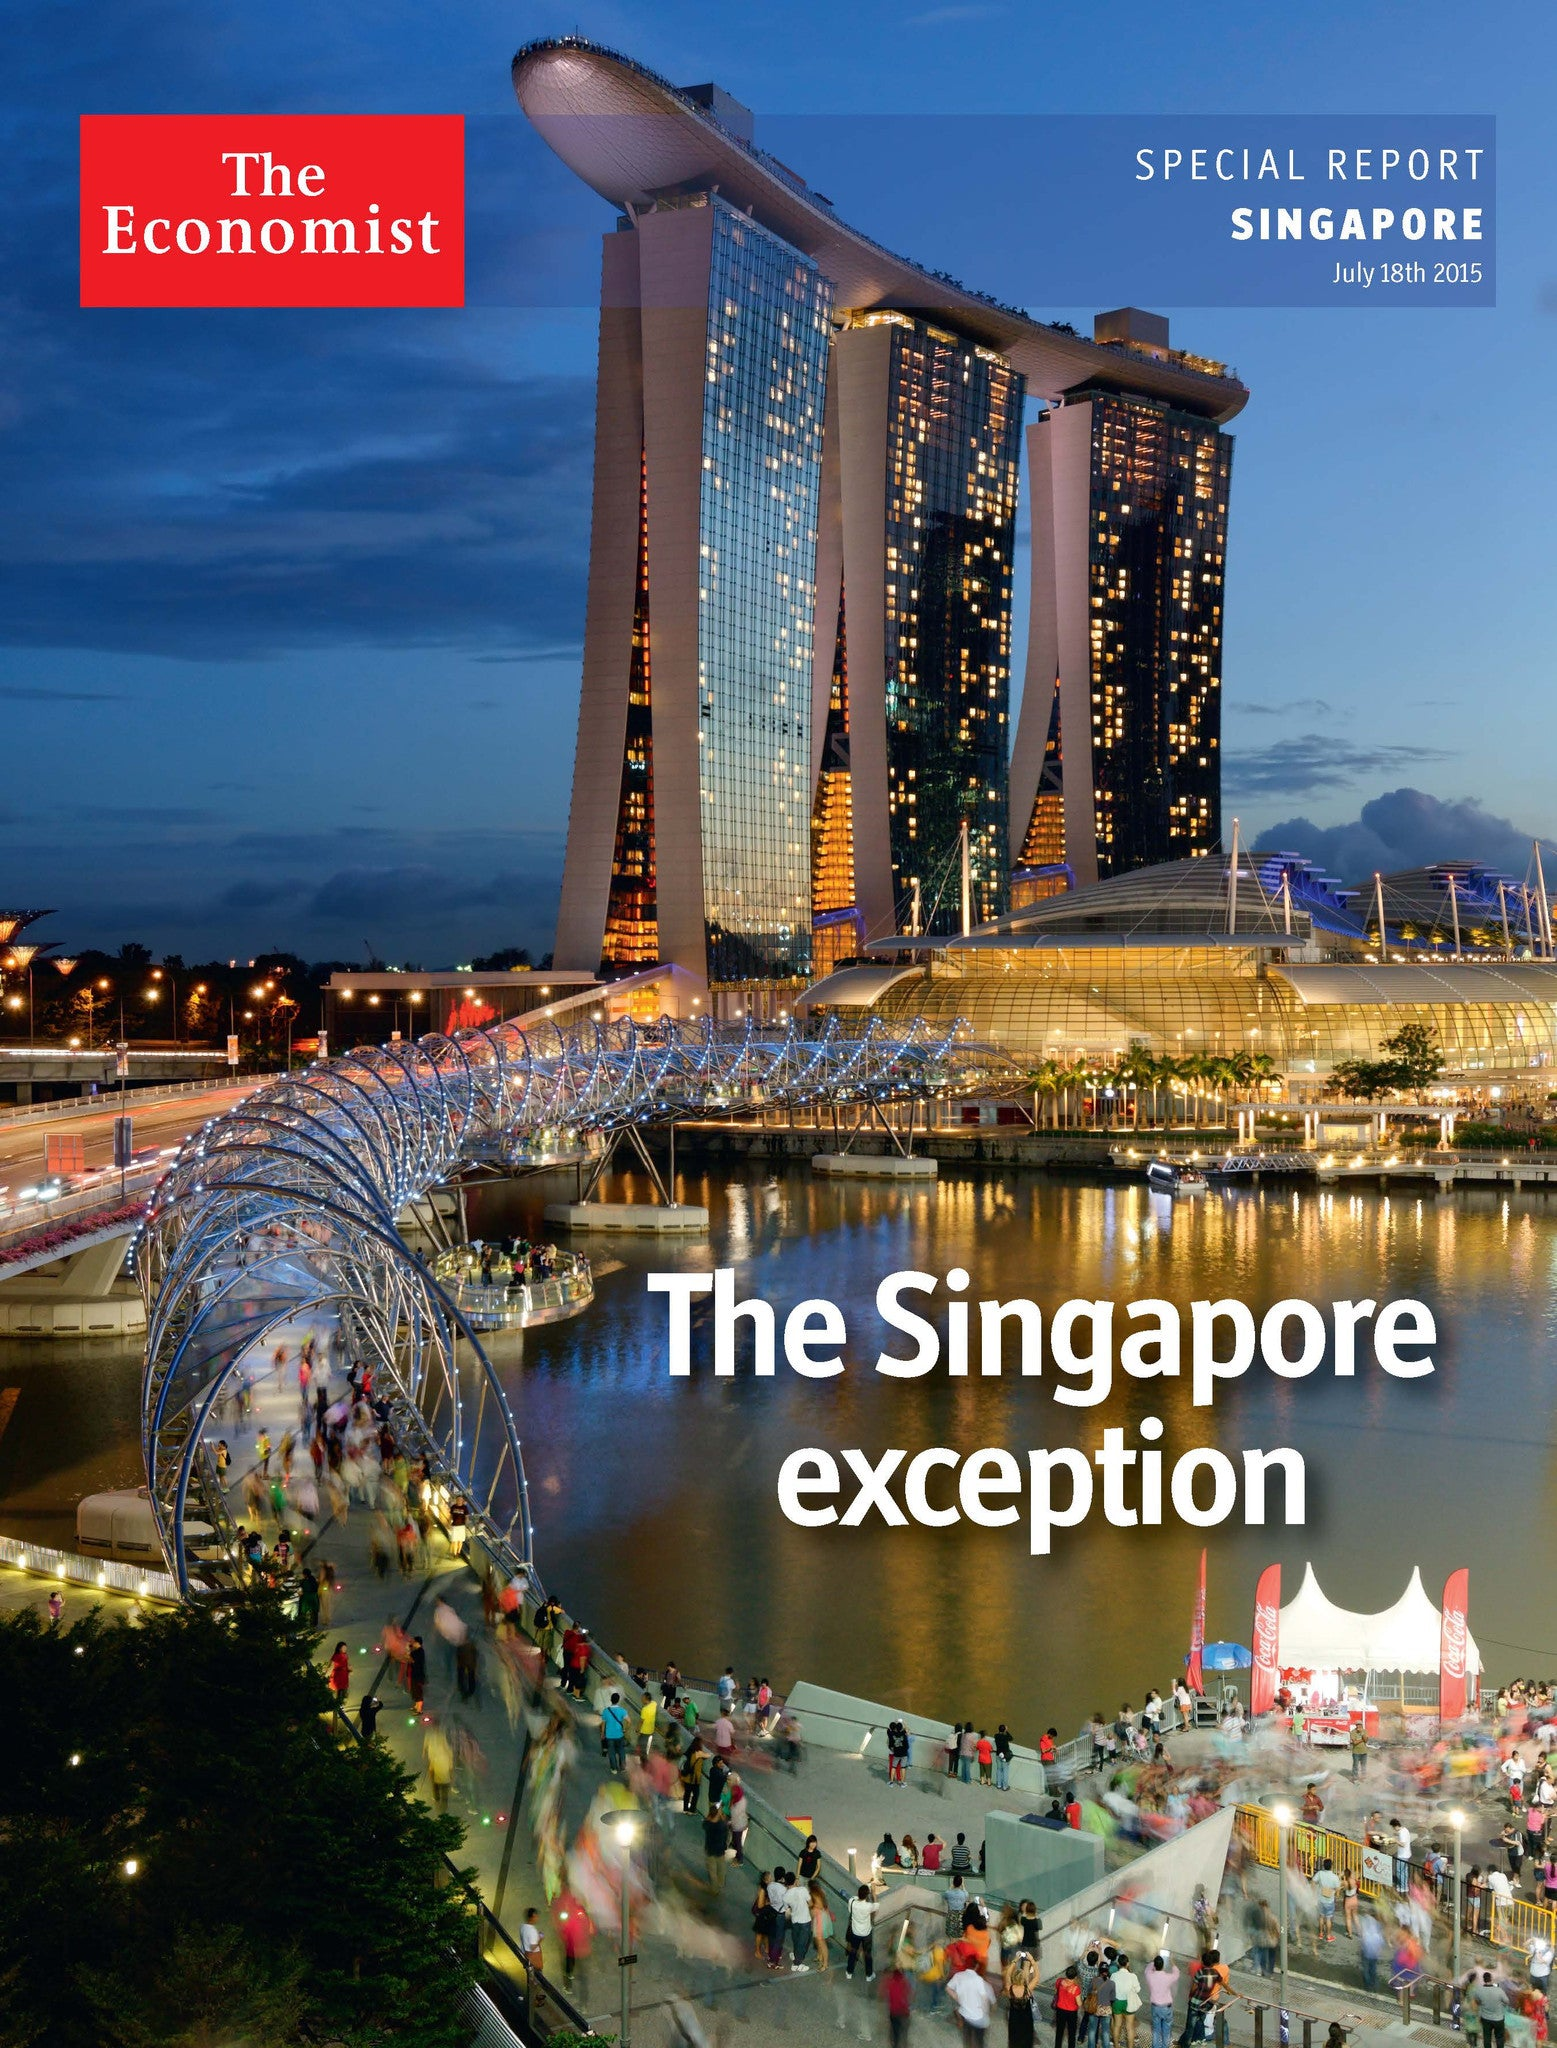 Special report in audio: Singapore